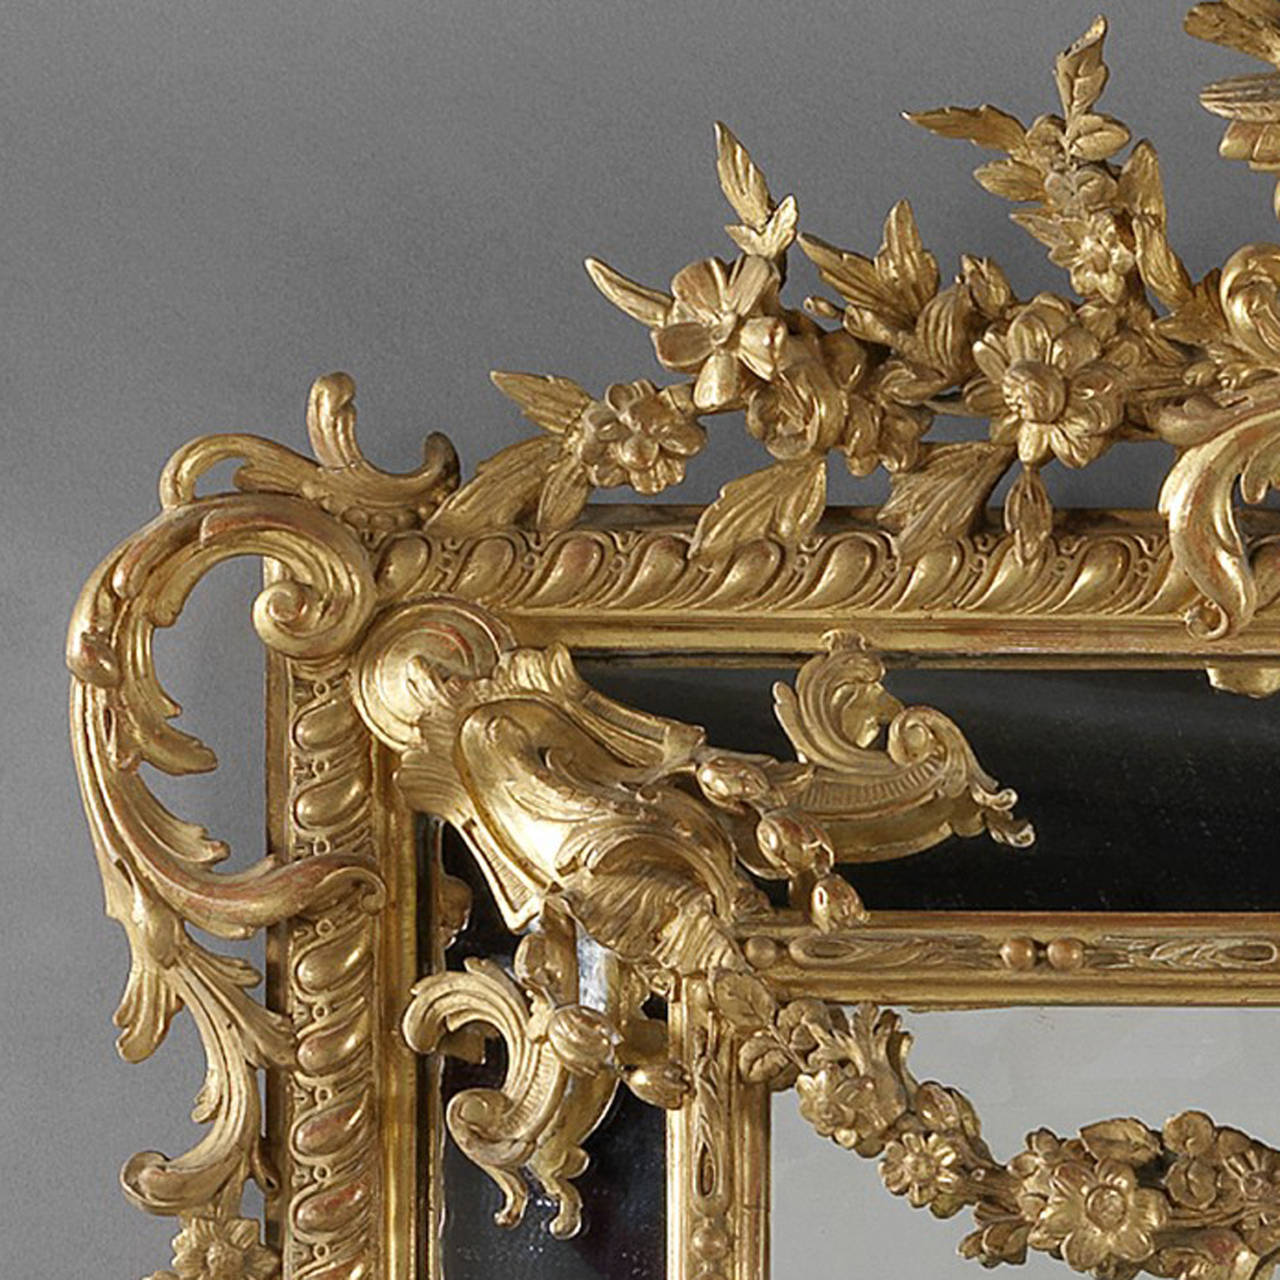 A Large and Finely Carved Louis XVI Style Marginal Frame Giltwood Mirror.    The bevelled rectangular mirror plate is framed by marginal side plates within a beaded and egg and dart carved rectangular giltwood frame with out-set corners and